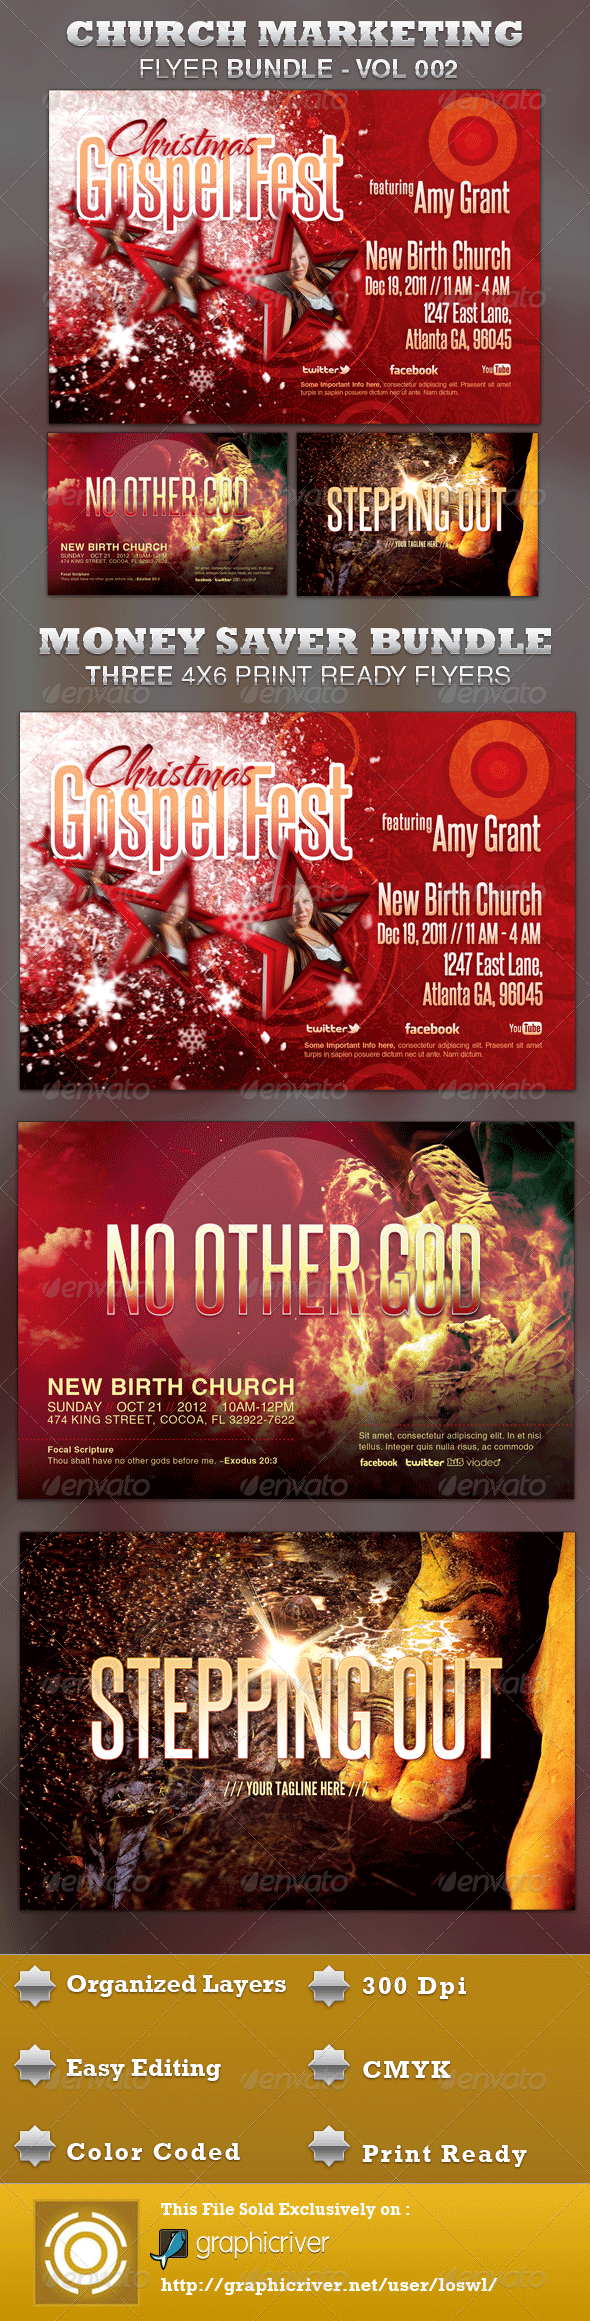 Church Marketing Flyer Bundle Vol-002 - Church Flyers